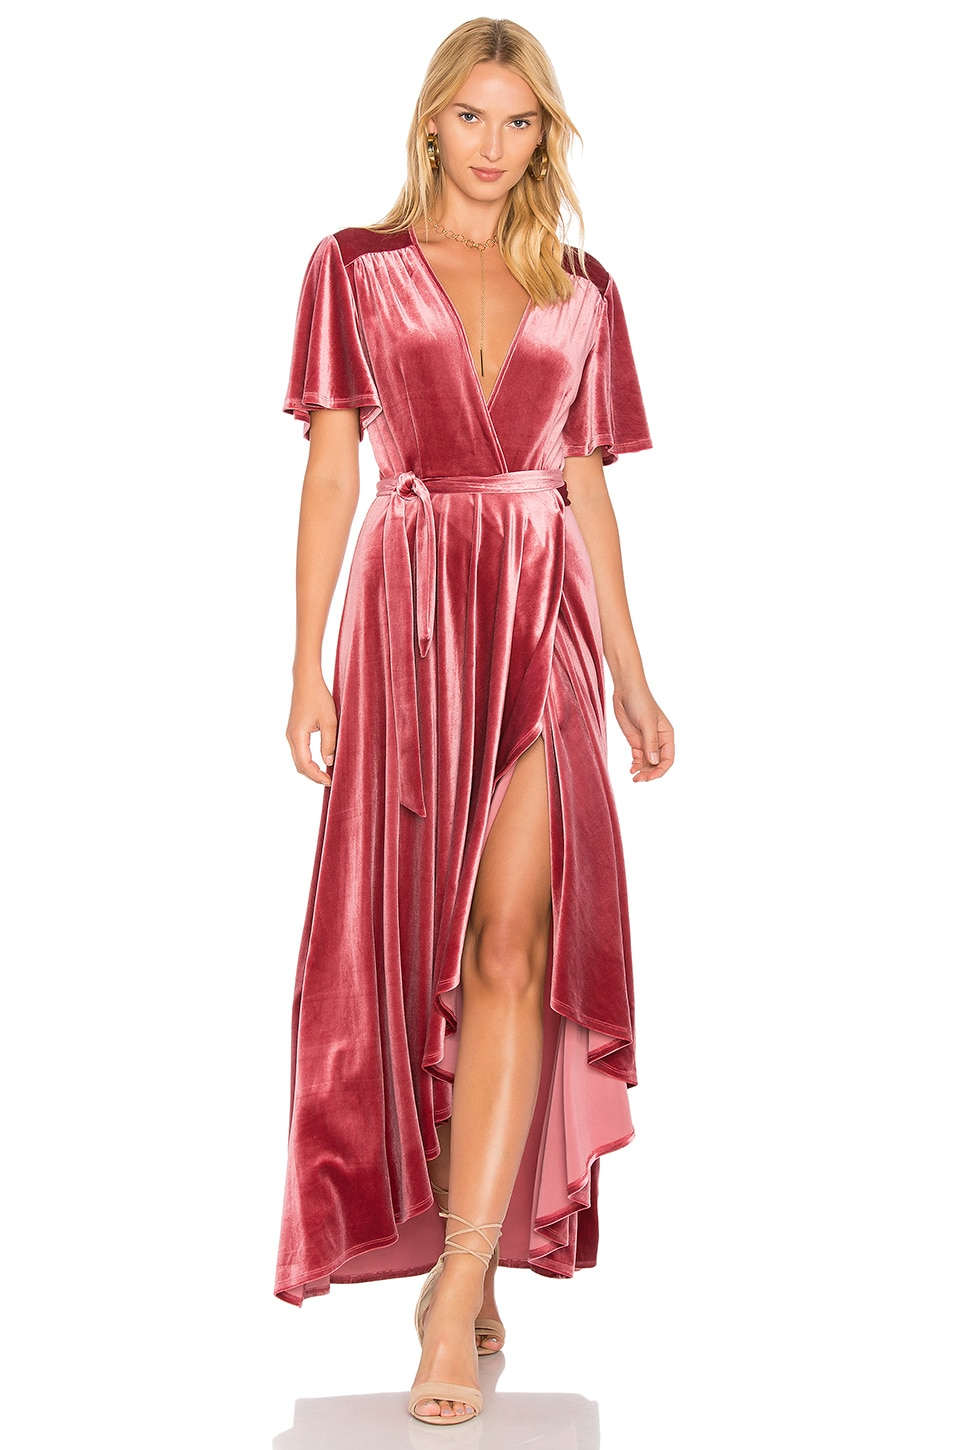 Privacy Please x REVOLVE Krause Dress in Deep Rose